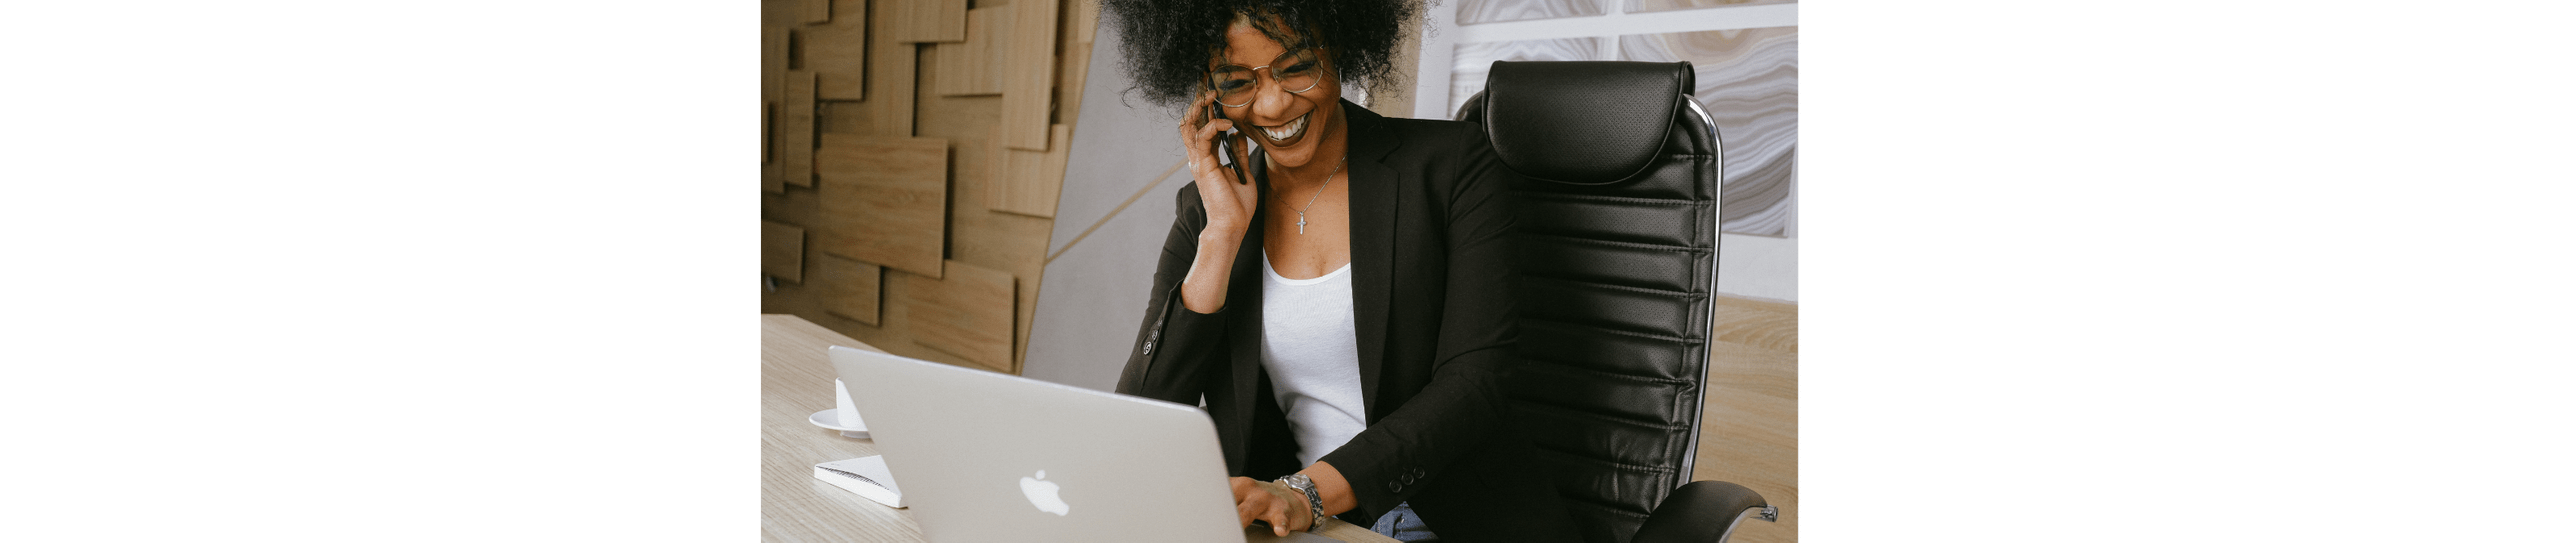 A photo of a black woman holding a phone to her ear and looking into a laptop